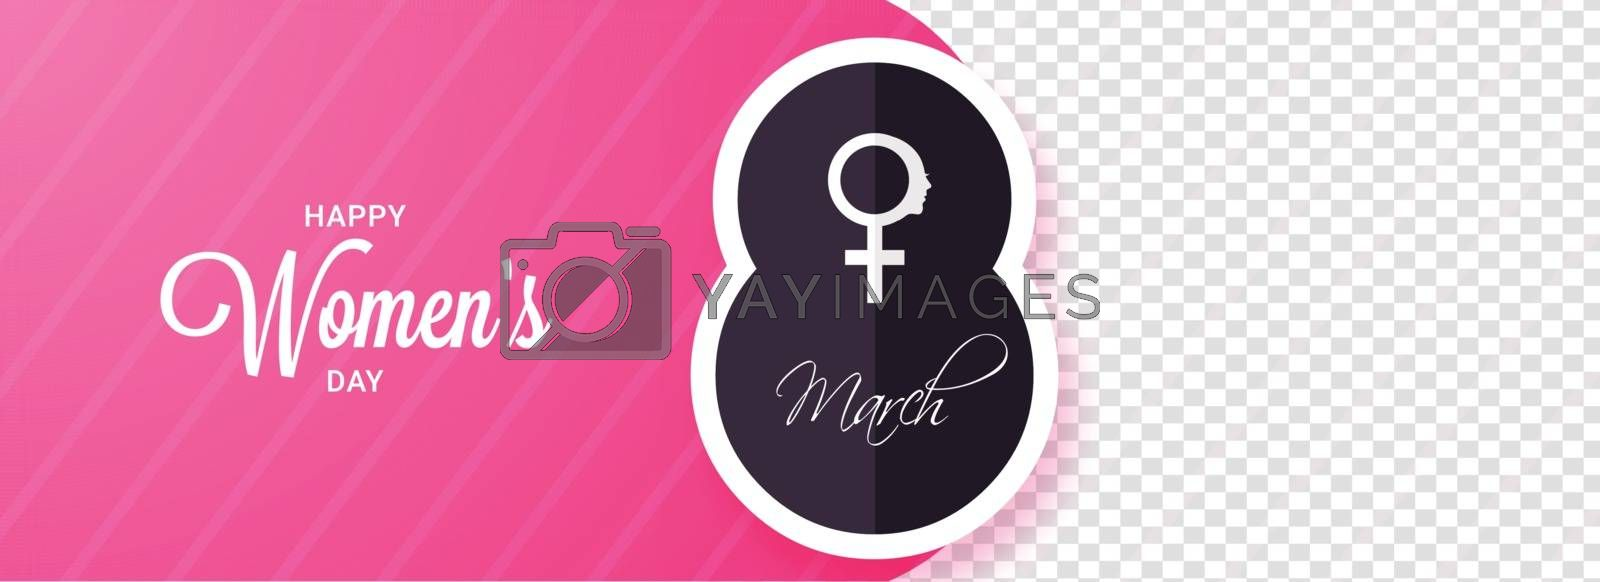 Happy Women's Day celebration header or banner design with space for your image.